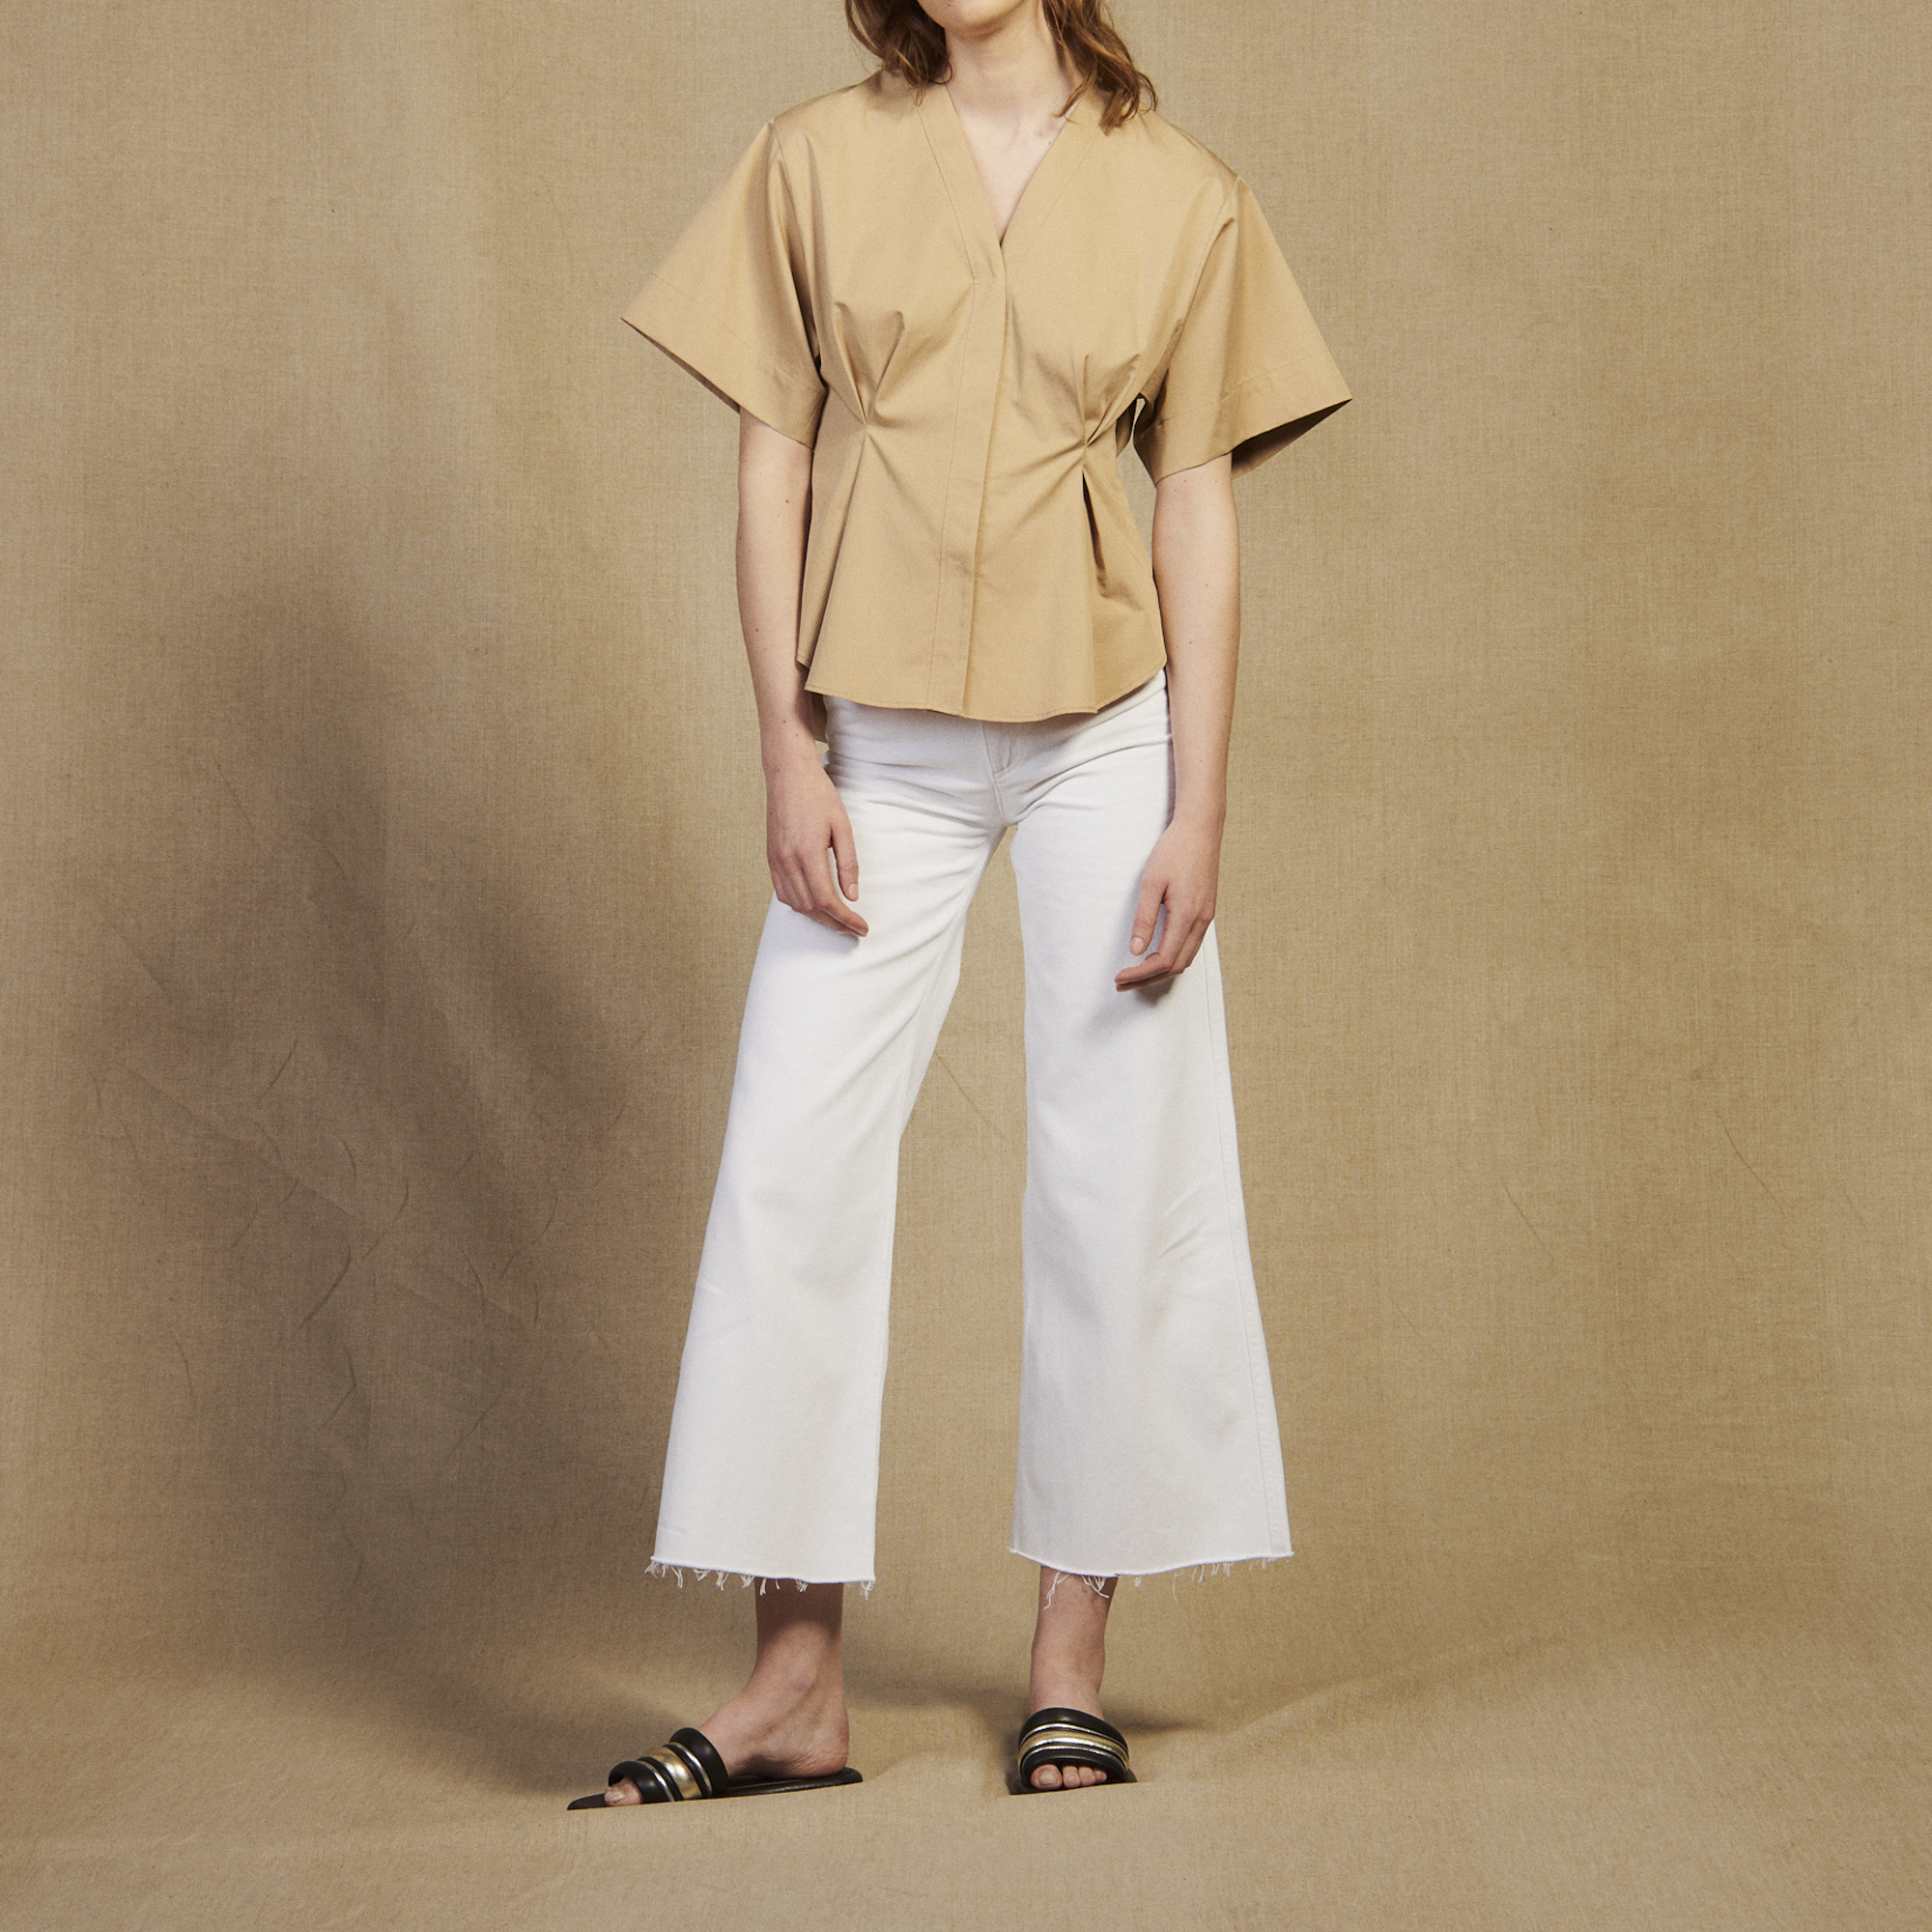 07814d0929fde Short-sleeved cotton blouse   Tops   Shirts color Beige ...